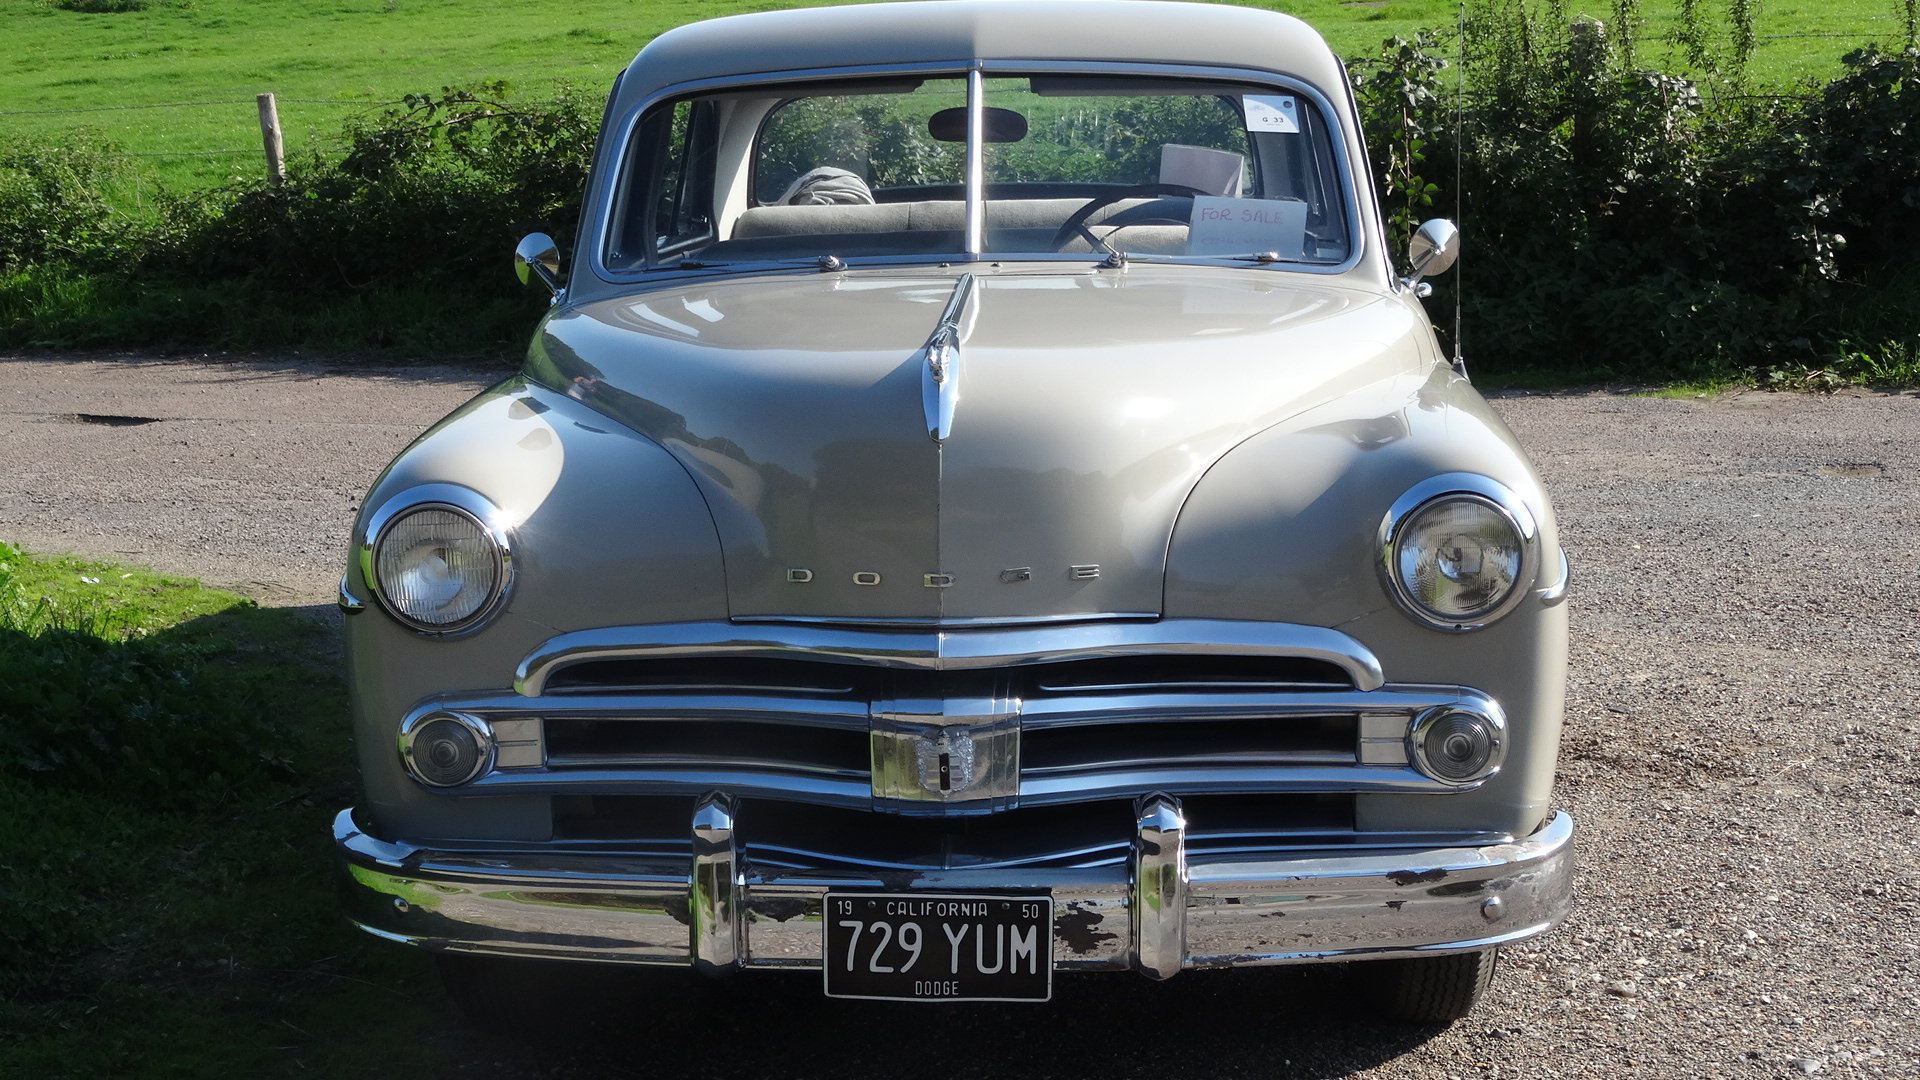 Dodge Coronet 1950 For Sale (picture 2 of 6)